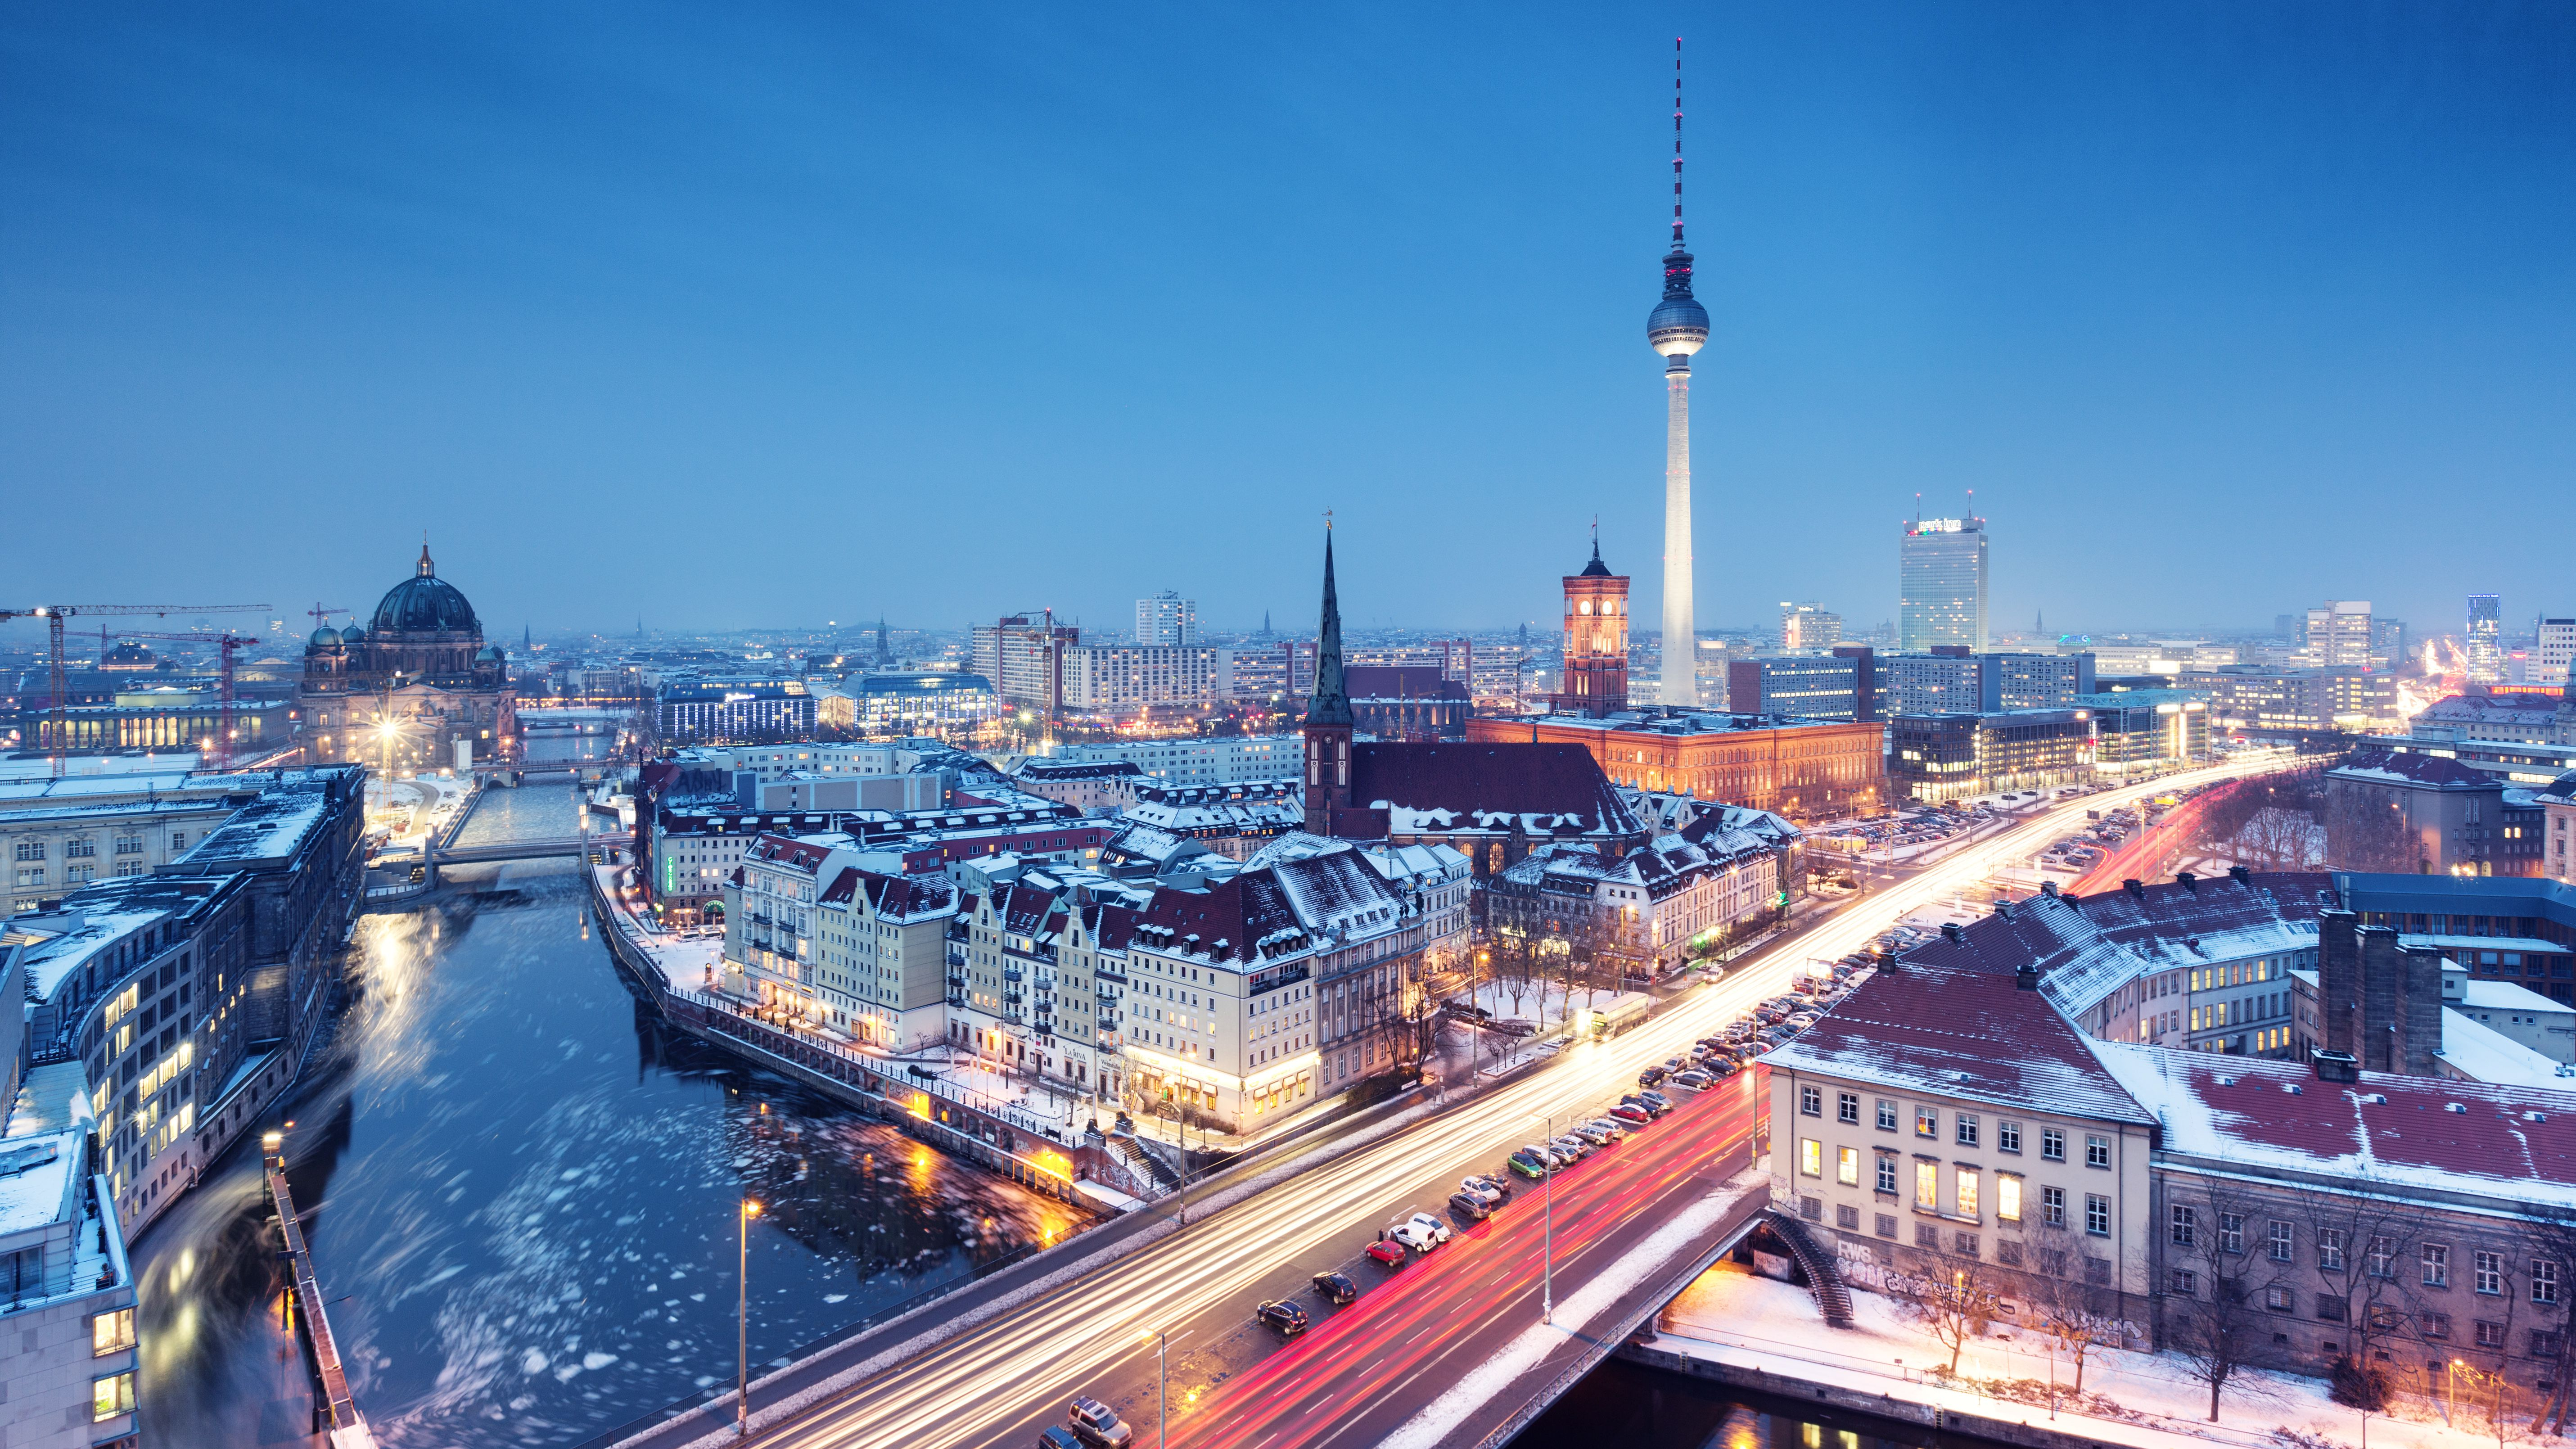 Berlin winter skyline with snow on the roofs